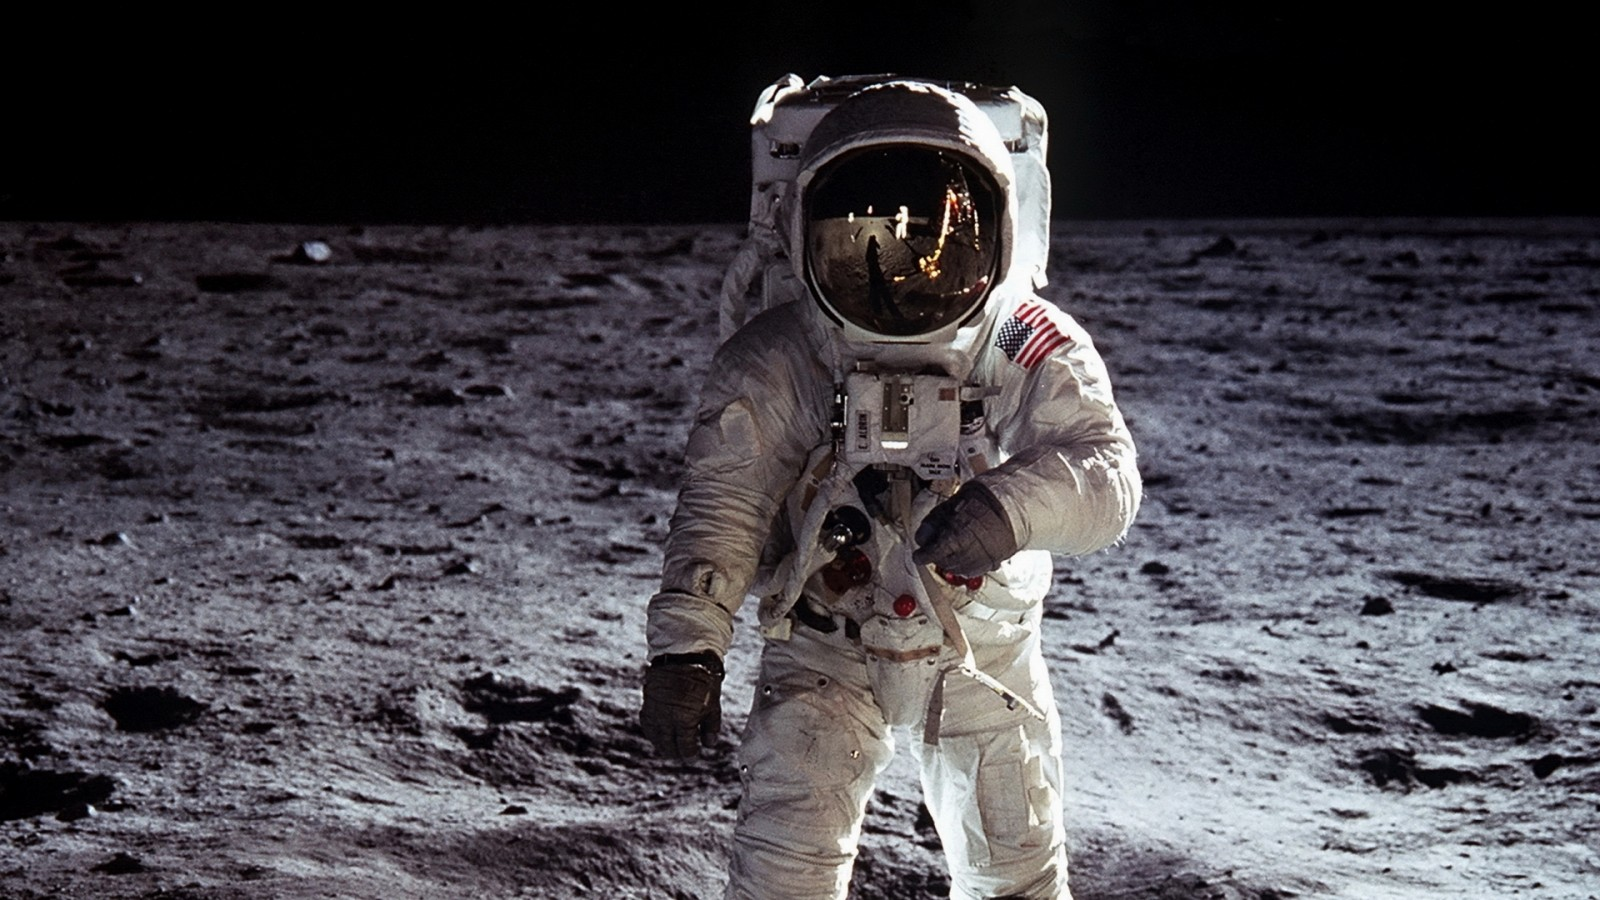 astronaut-outer-space-moon-nasa-astronauts-free-208100